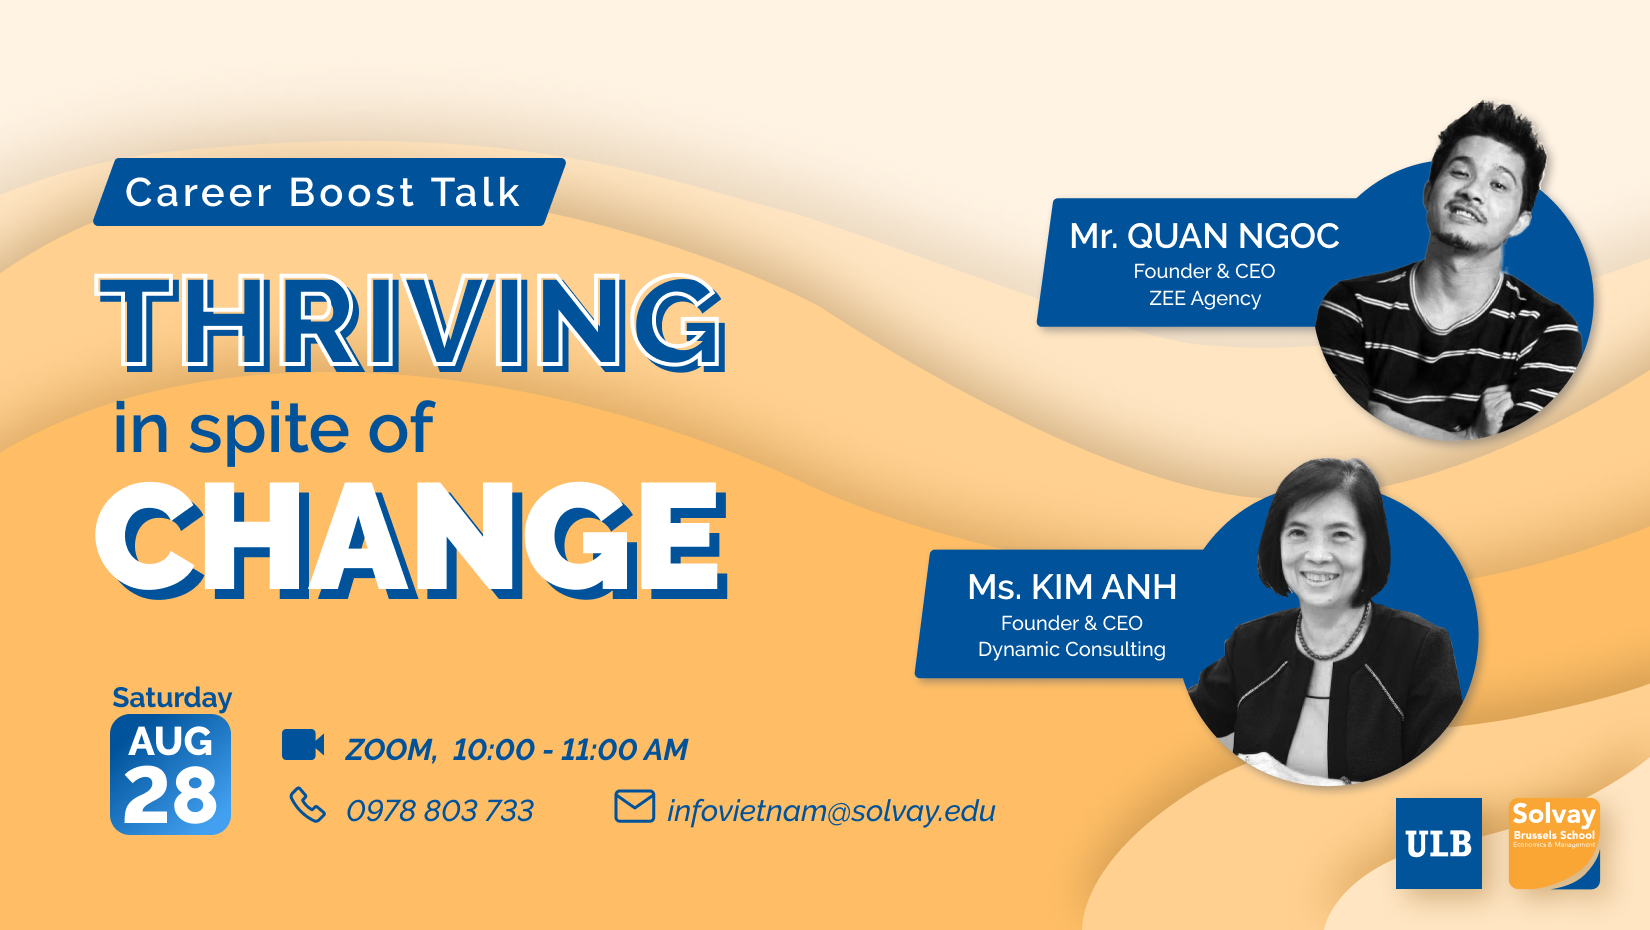 Career Boost Talk - Thriving in spite of Change